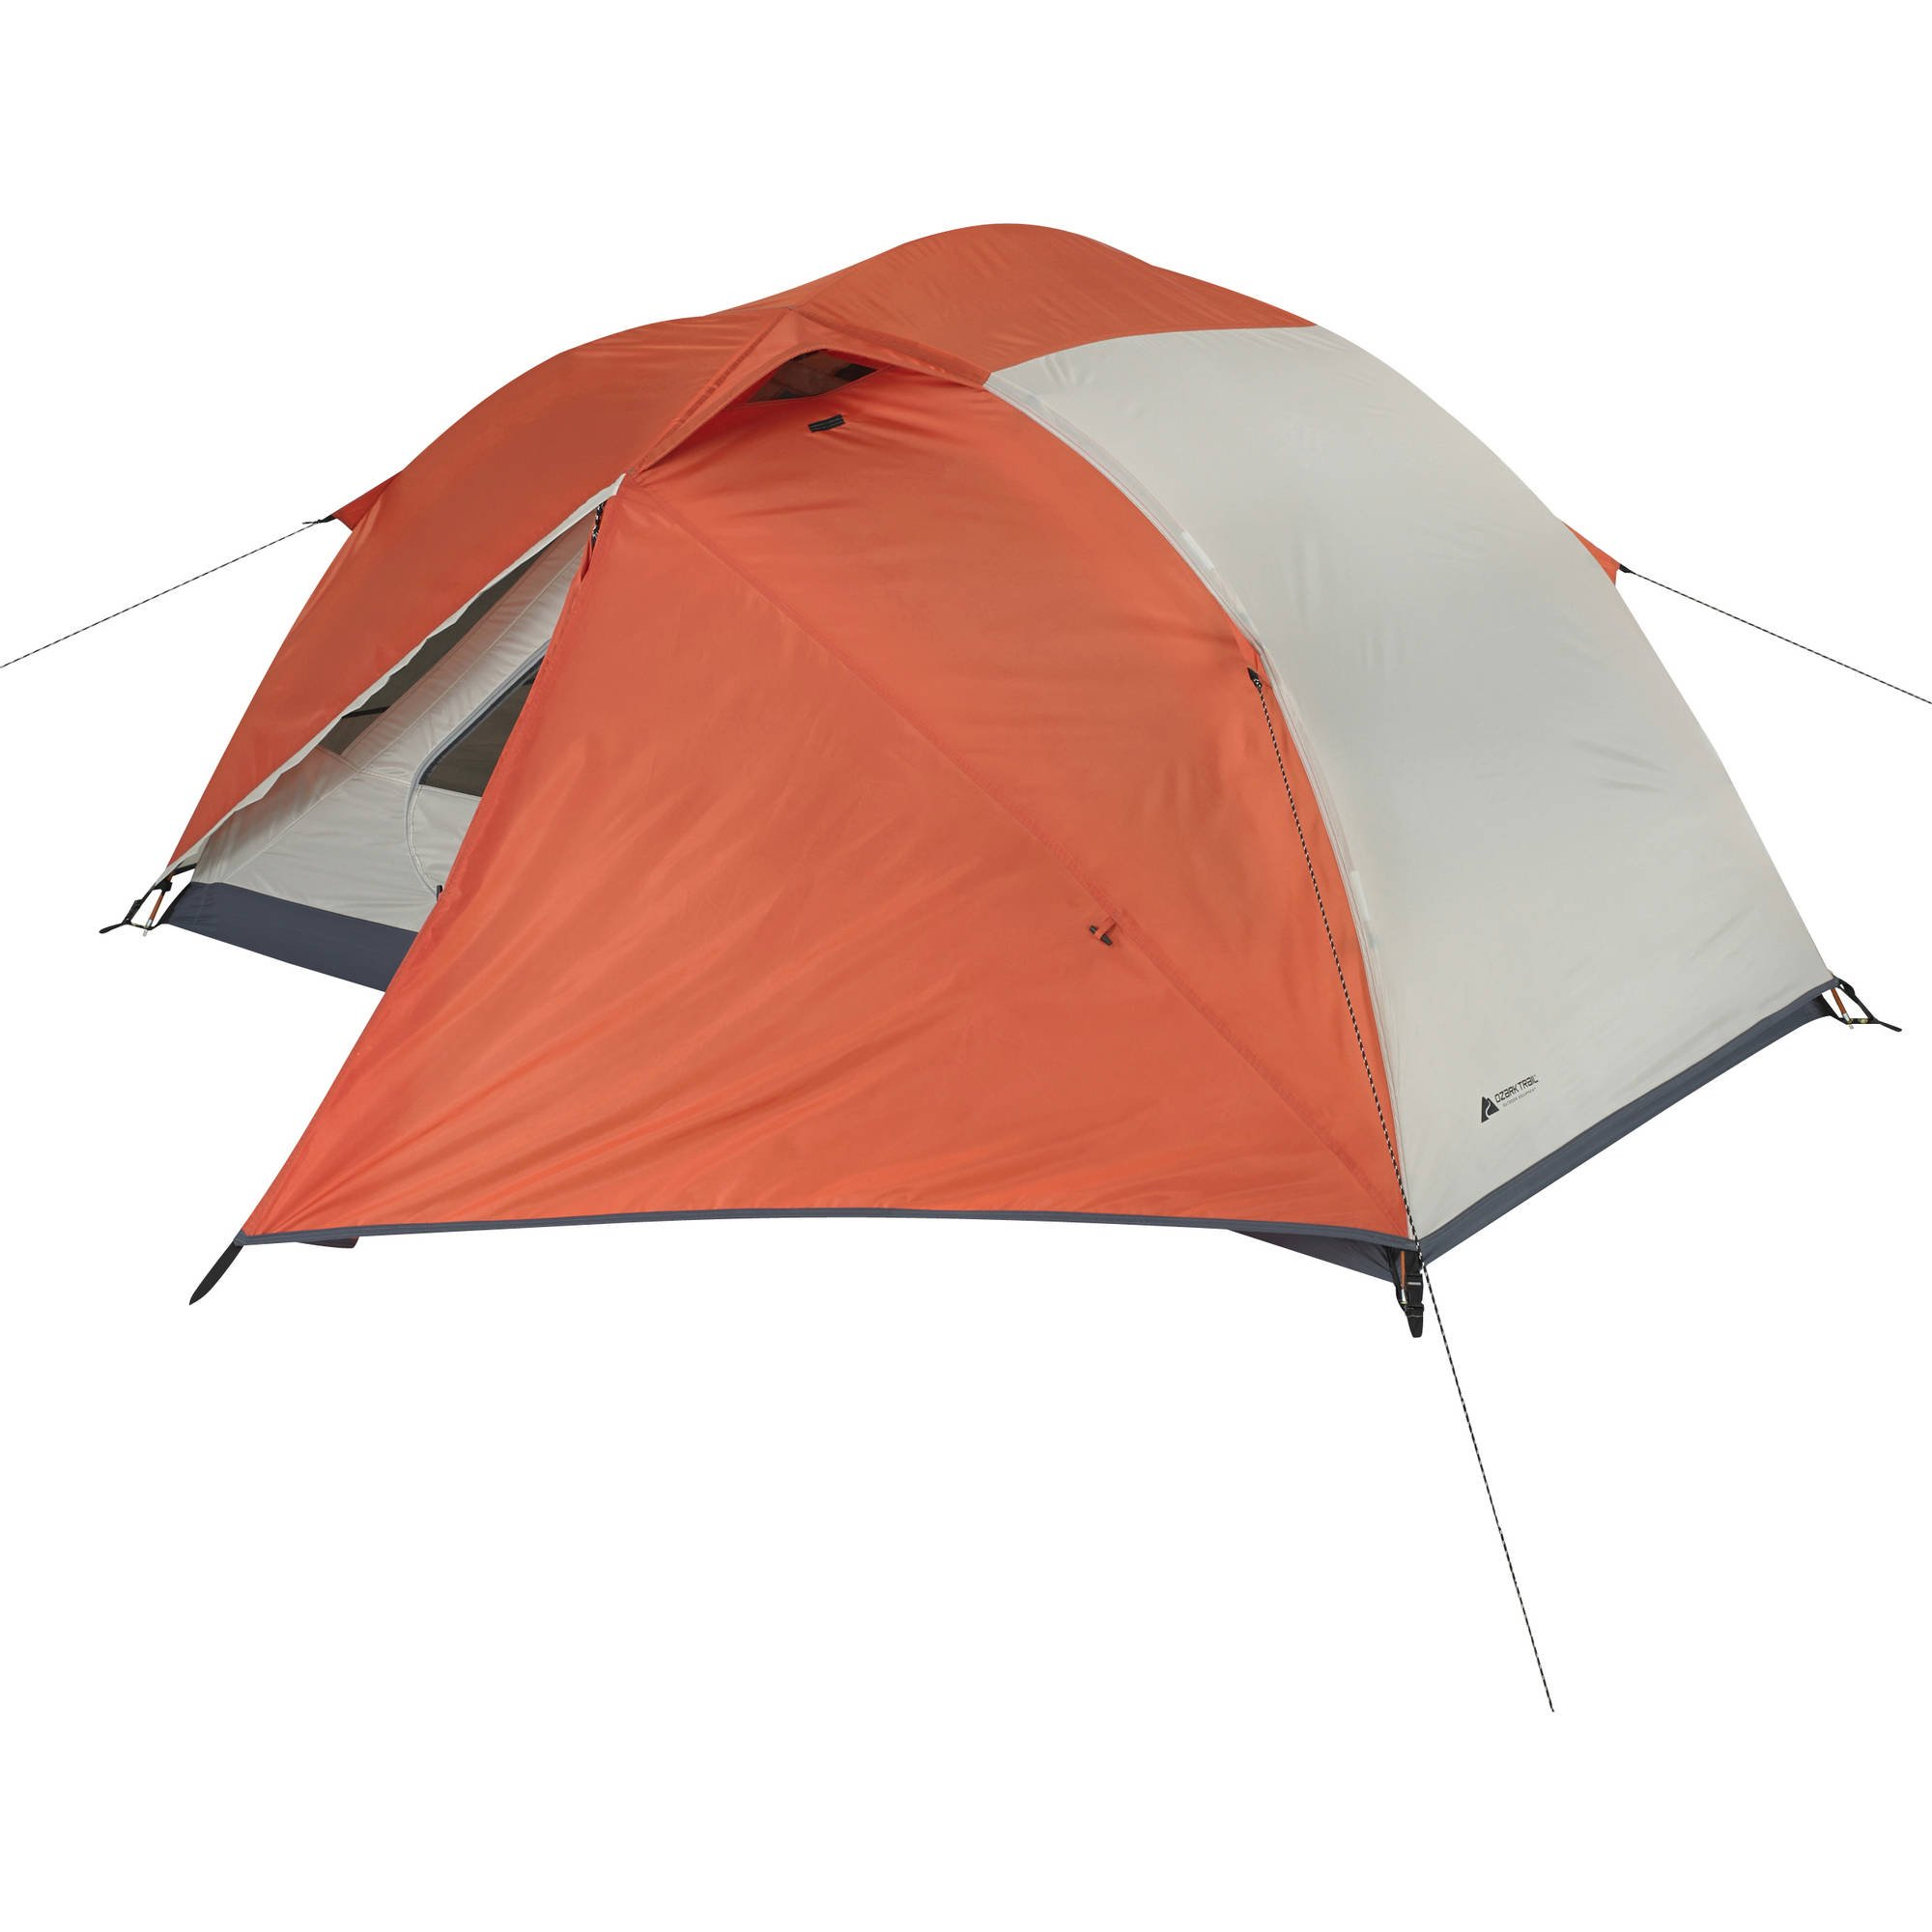 Ozark Trail 2-Person 4-Season Backpacking Tent  sc 1 st  Walmart : 2 person hiking tent - memphite.com